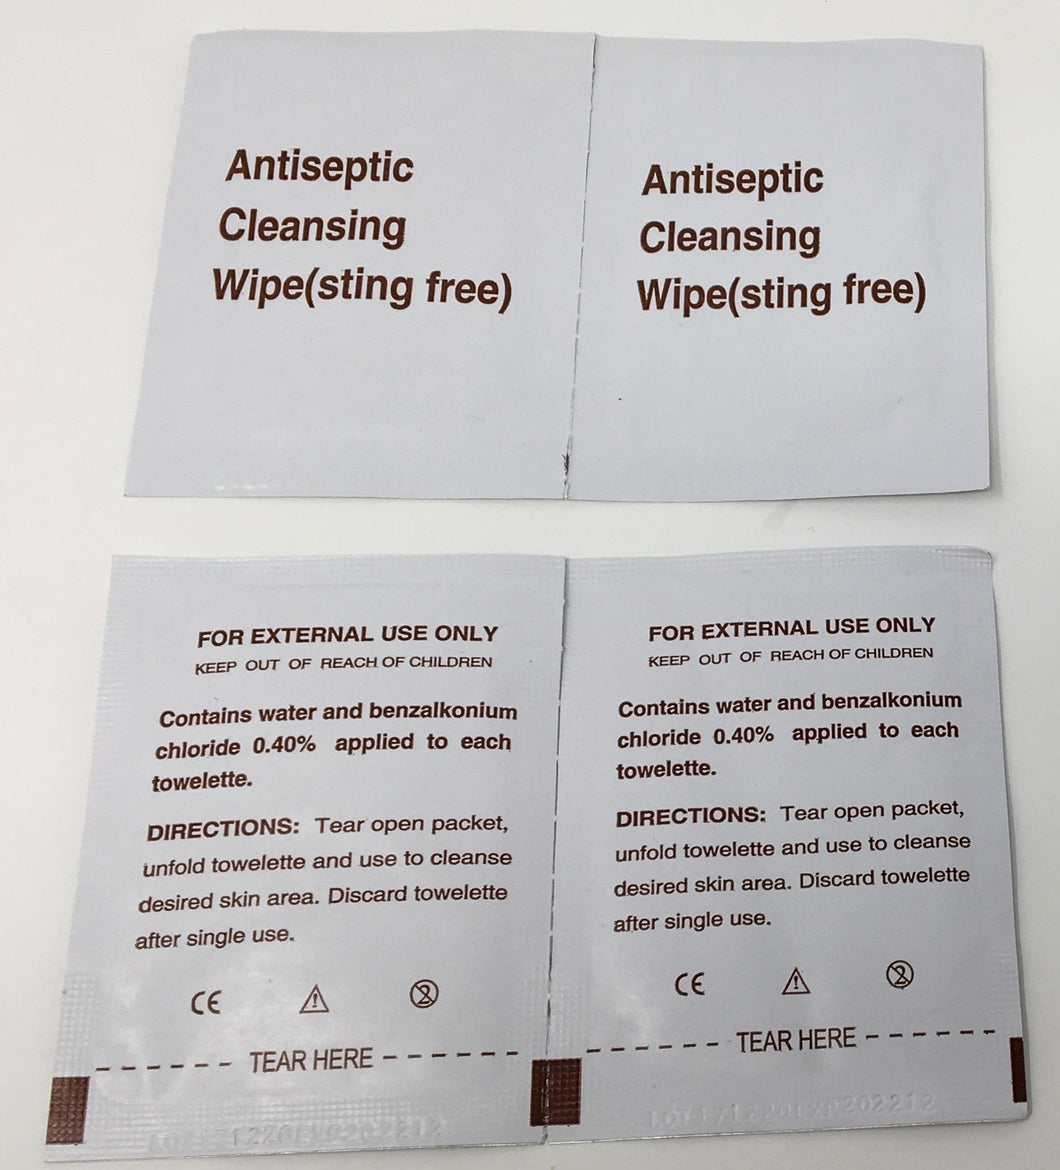 Antiseptic Cleansing Wipes - Don't Let Infection Dictate What You Do! Don't be troubled by infection when it is just so easy to help prevent! Our Antiseptic Cleansing Wipes clean wounds to help prevent infection! Cleans wound to help prevent Infection Sanitary single use packets Sting-Free! What You Get: Pack of 36 single use packets